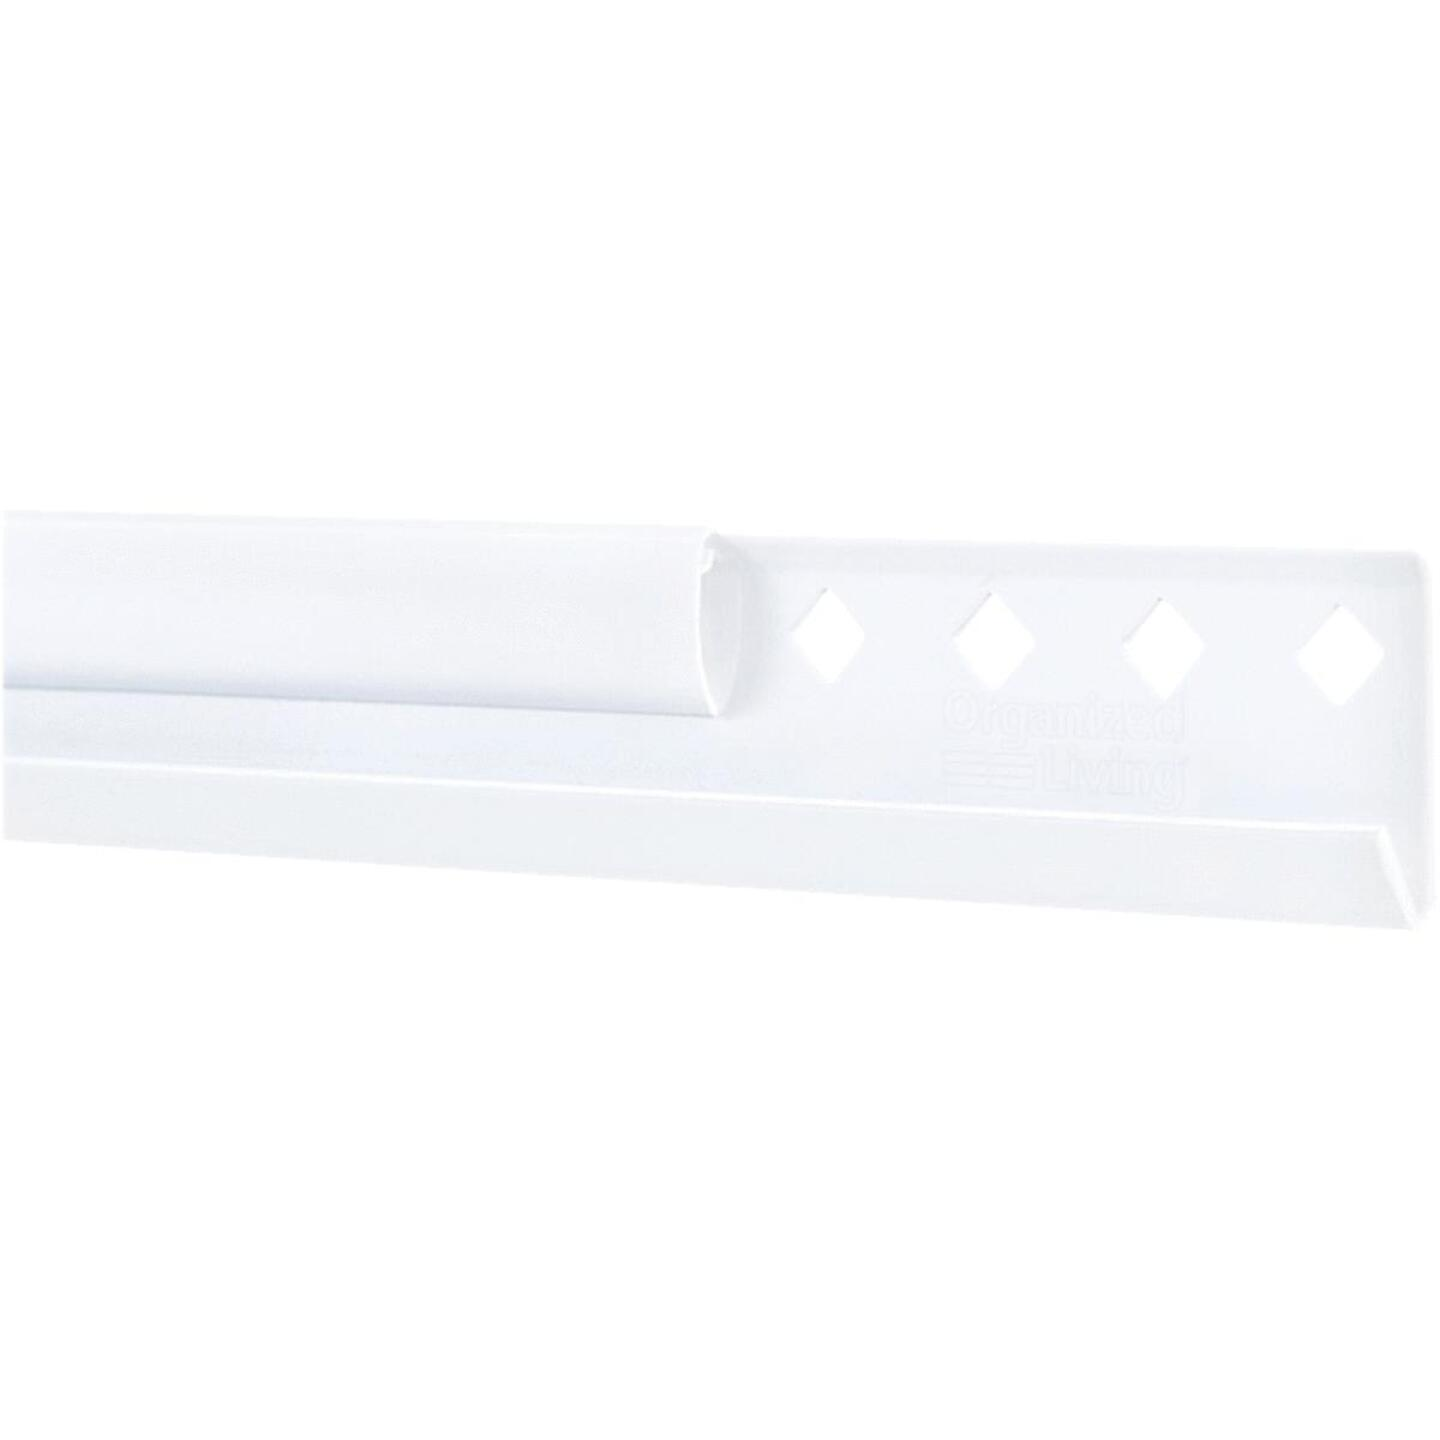 FreedomRail 60 In. White Horizontal Hanging Rail with Cover Image 1